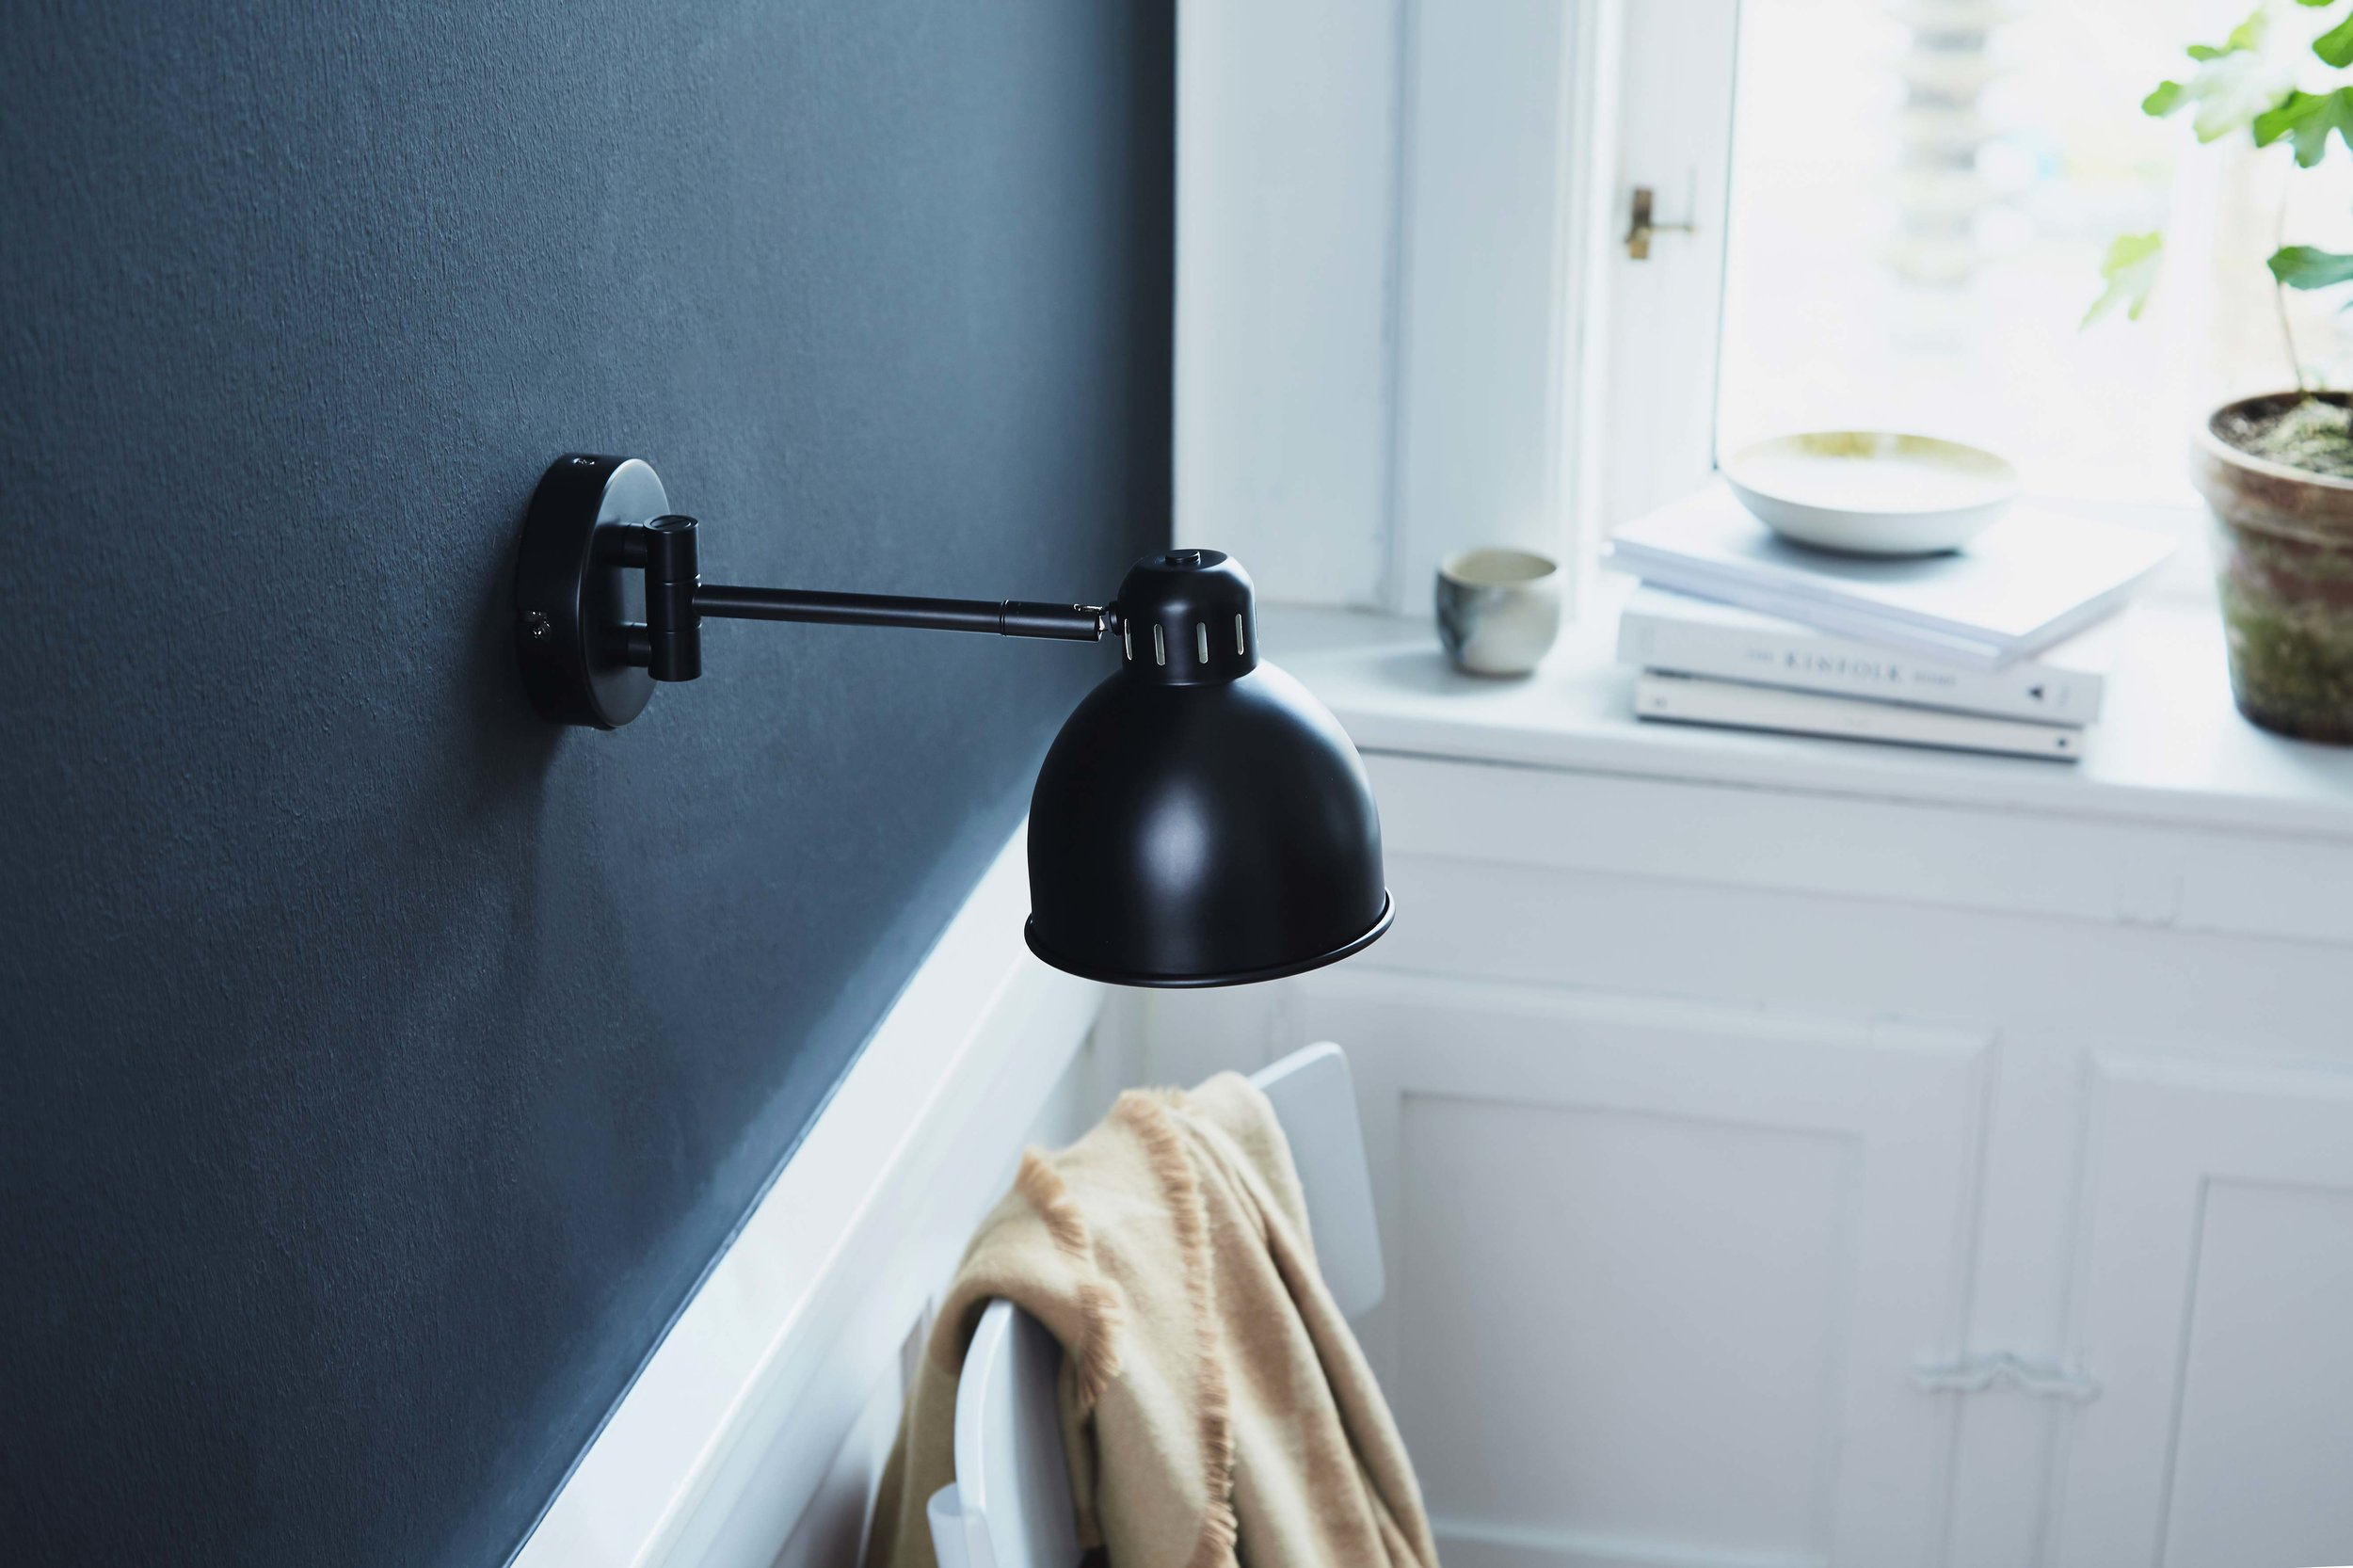 Job-Mini-wall-lamp-black-matt---lifestyle-Raadhusgade-4149.jpg